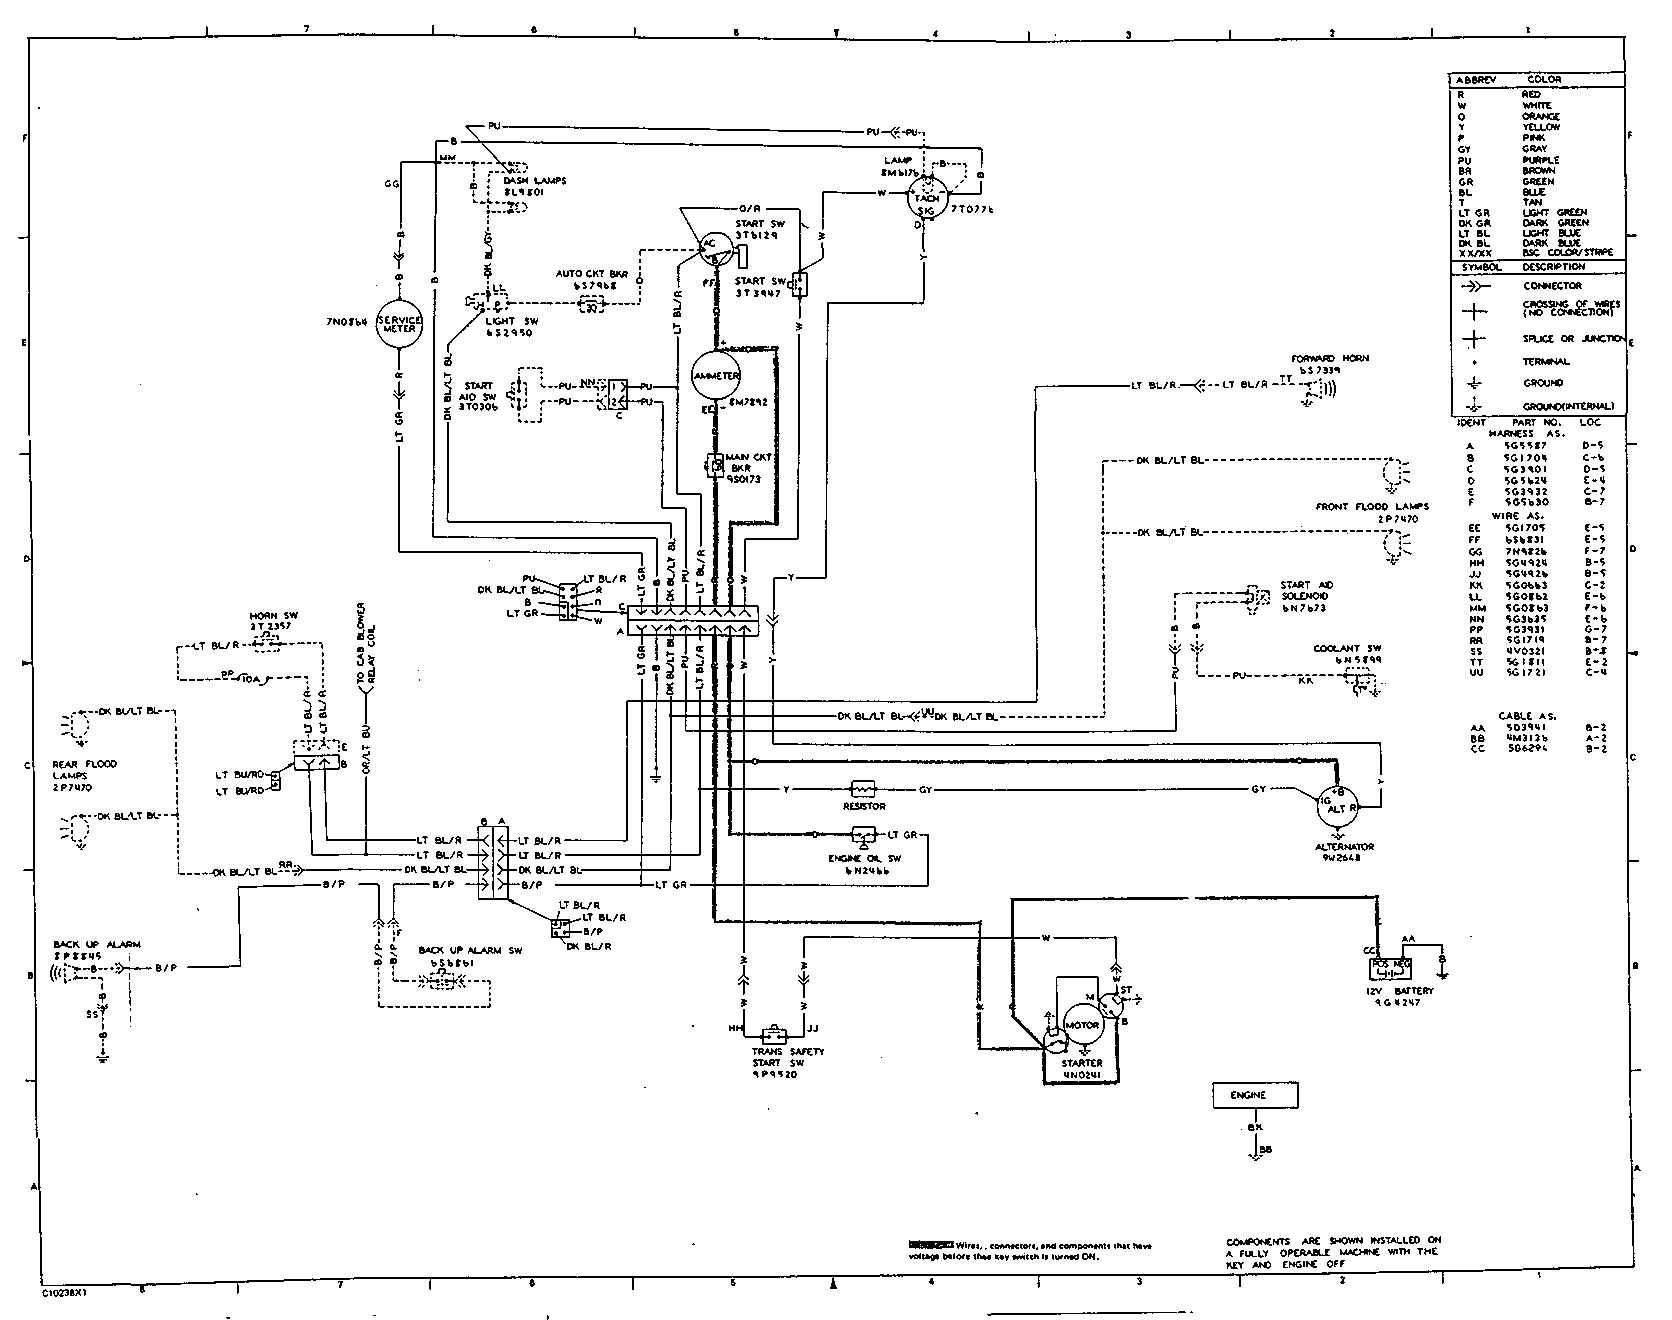 c18 caterpillar engine diagram